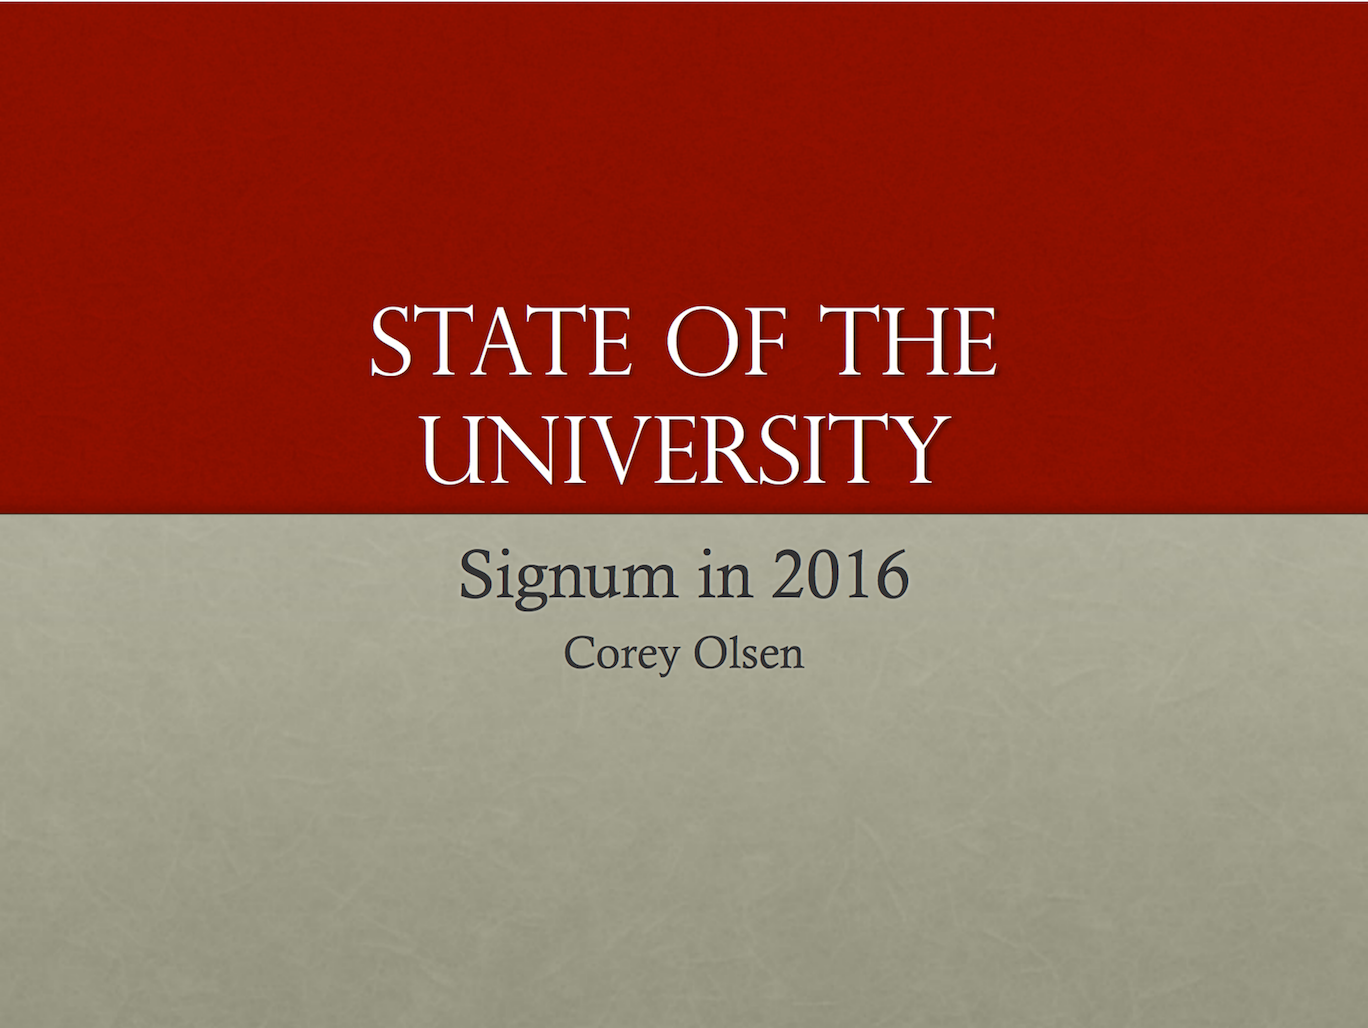 State of the University in 2016